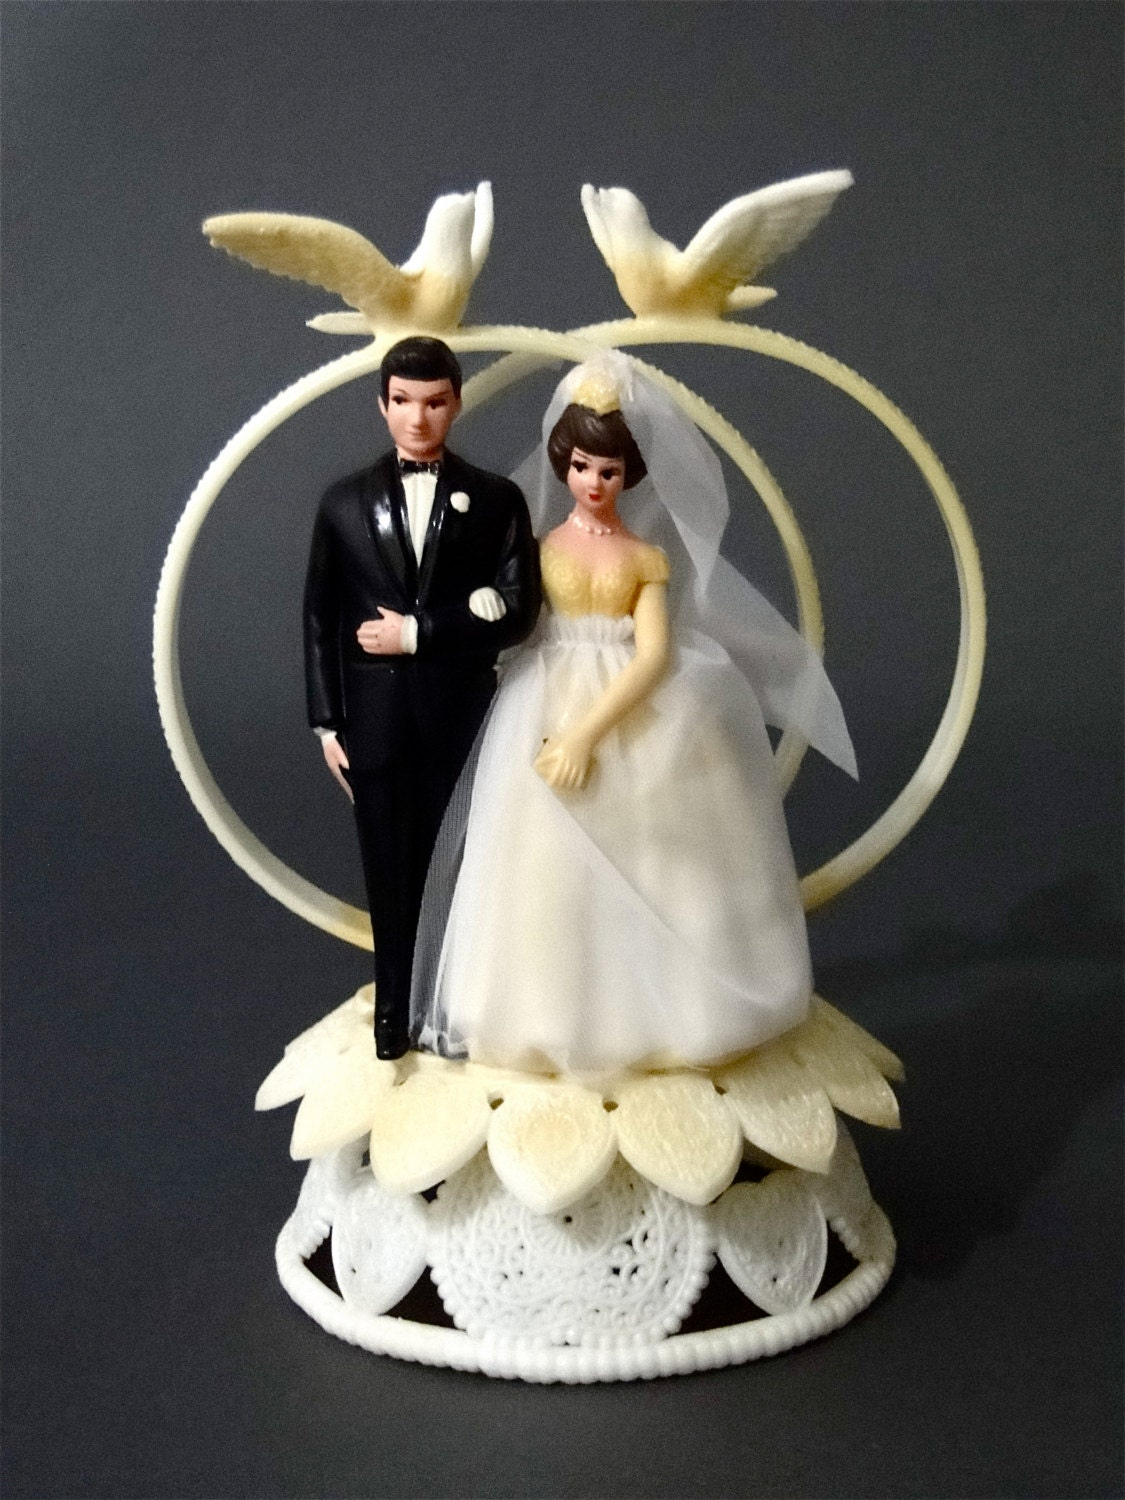 retro wedding cake toppers vintage wedding cake topper and groom 1950 s retro 19202